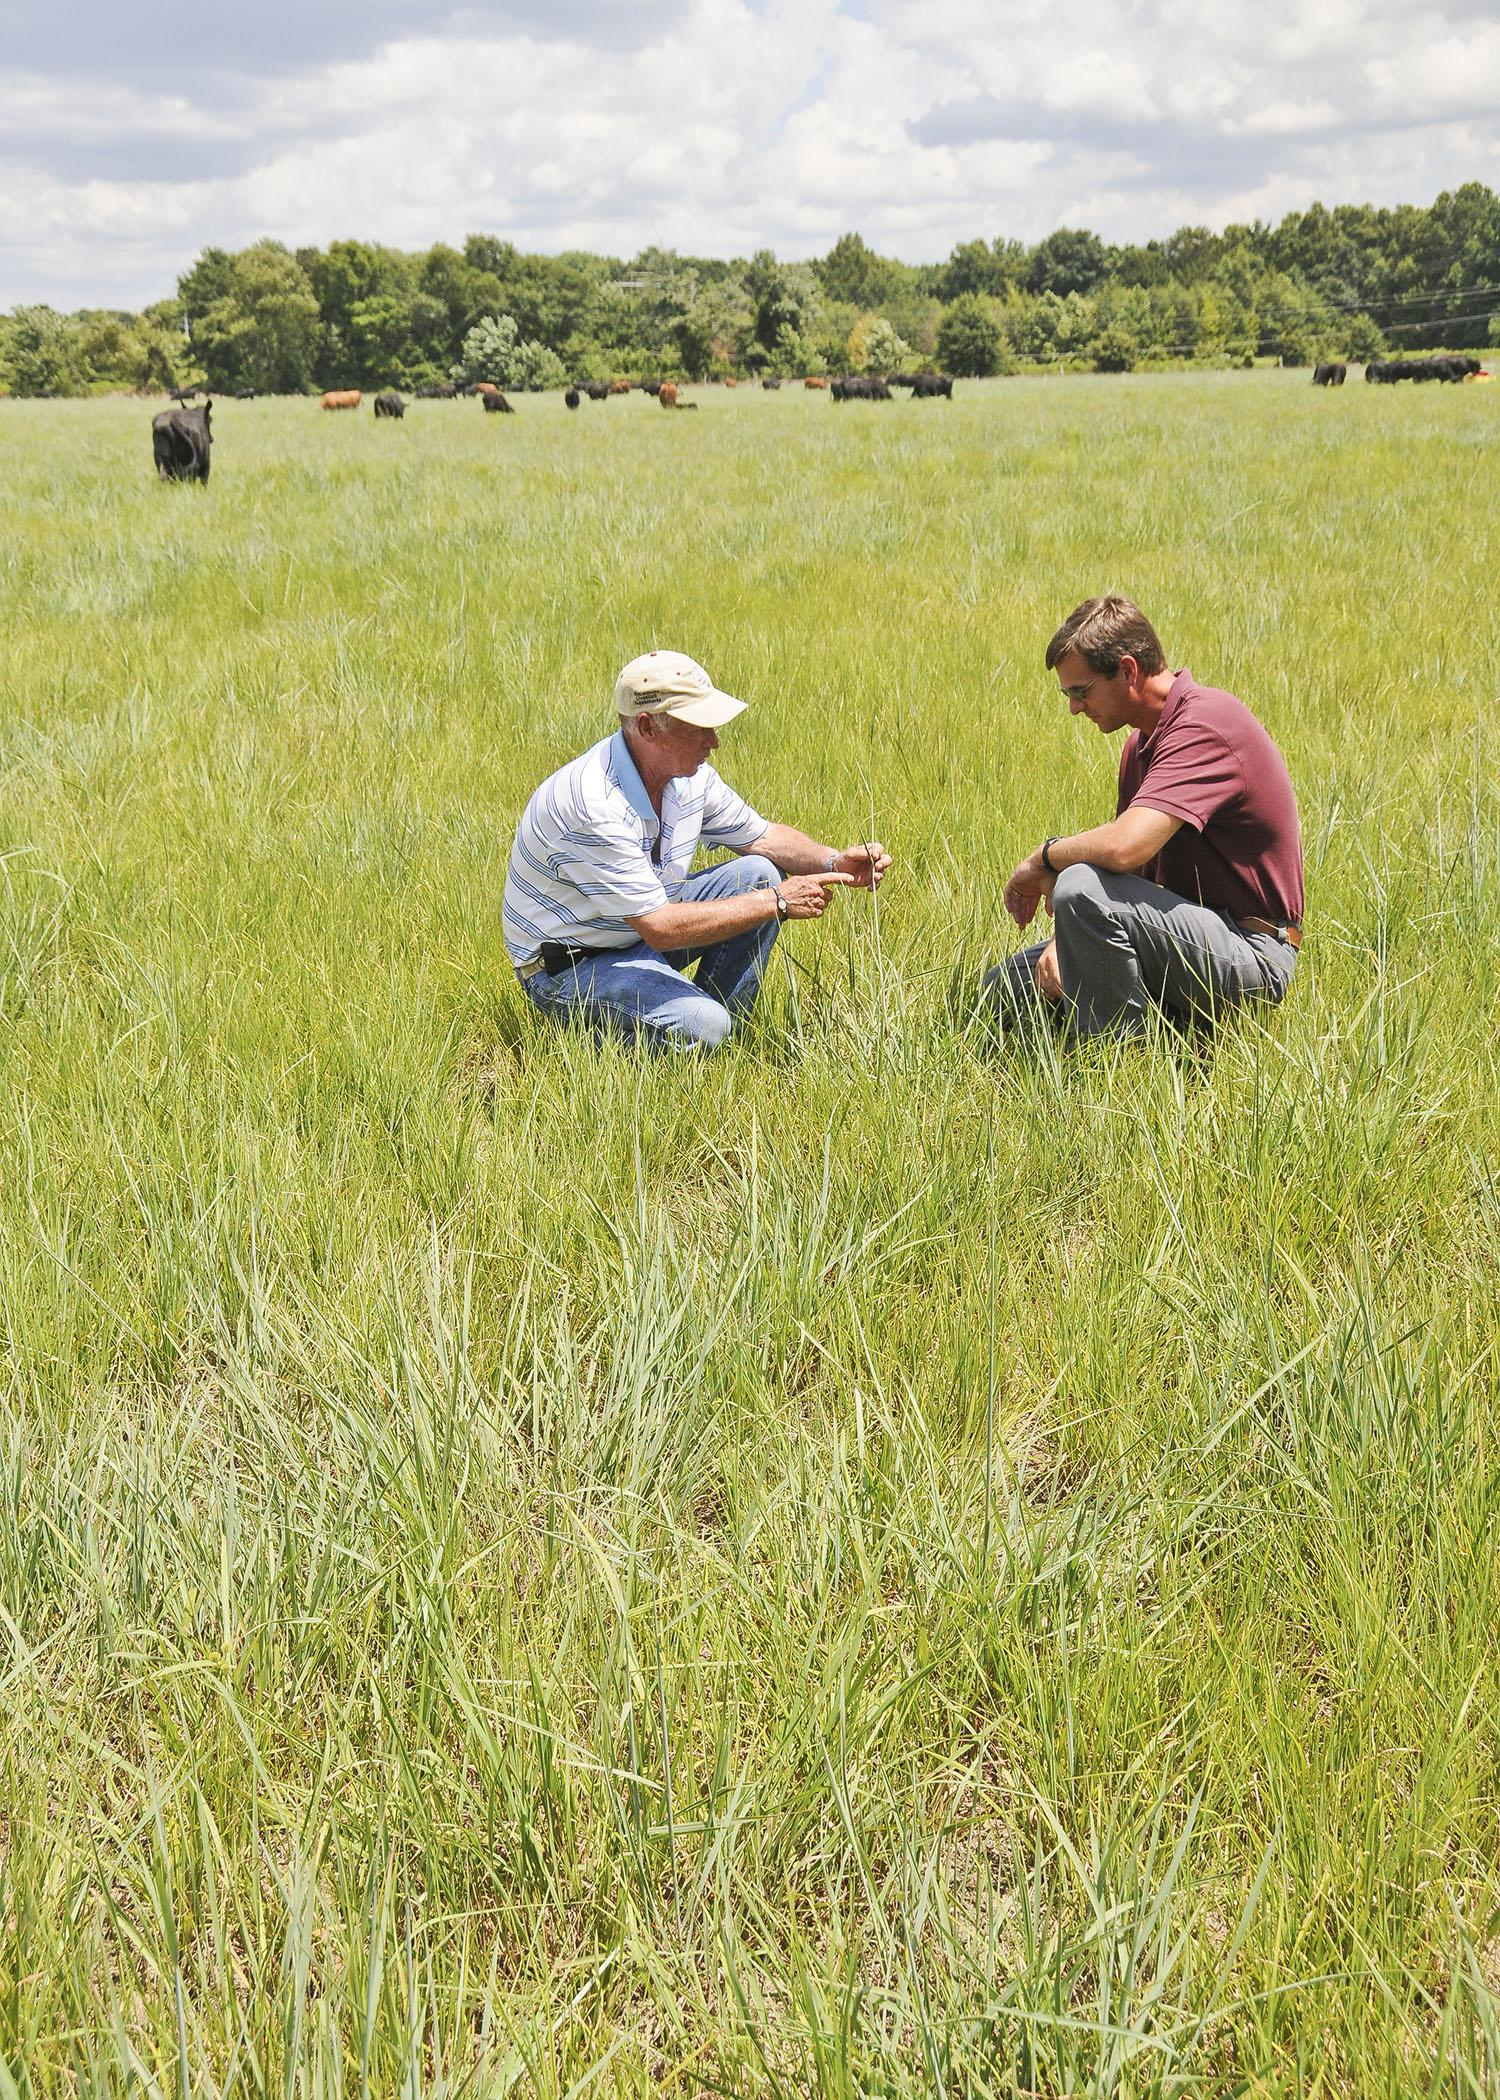 Durwood Gordon, left, and Judd Gentry examine the native-grass pasture in Gordon's intensive grazing operation in Panola County. Gordon Farms is participating in Mississippi State University's REACH program. (Photo by MSU Ag Communications/Scott Corey)